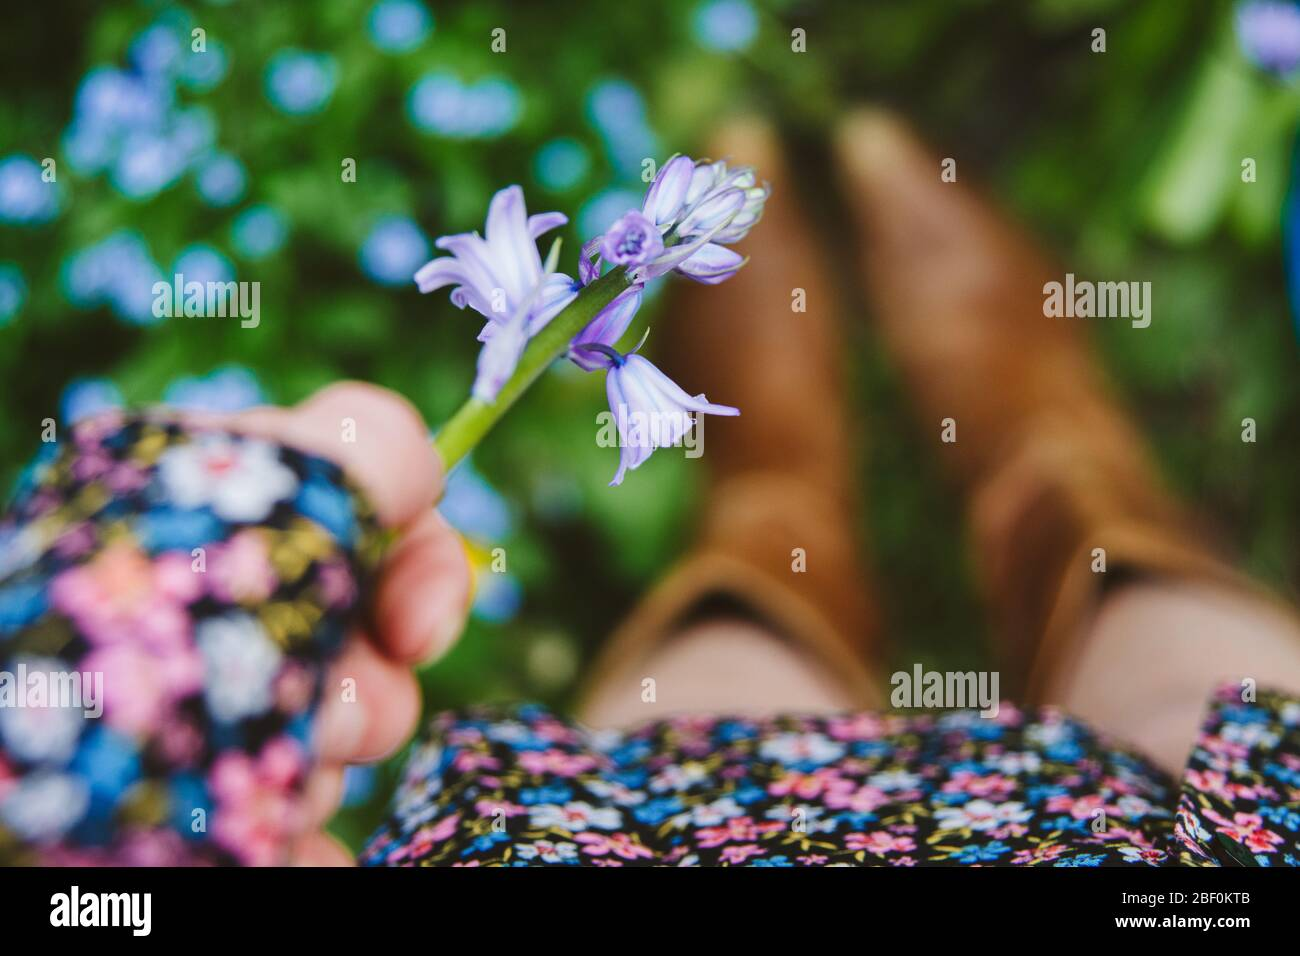 A girl or woman picking a bluebell on a spring day, wearing a floral dress and cowboy boots. Focus on the bluebell in hand. Shallow dof Stock Photo